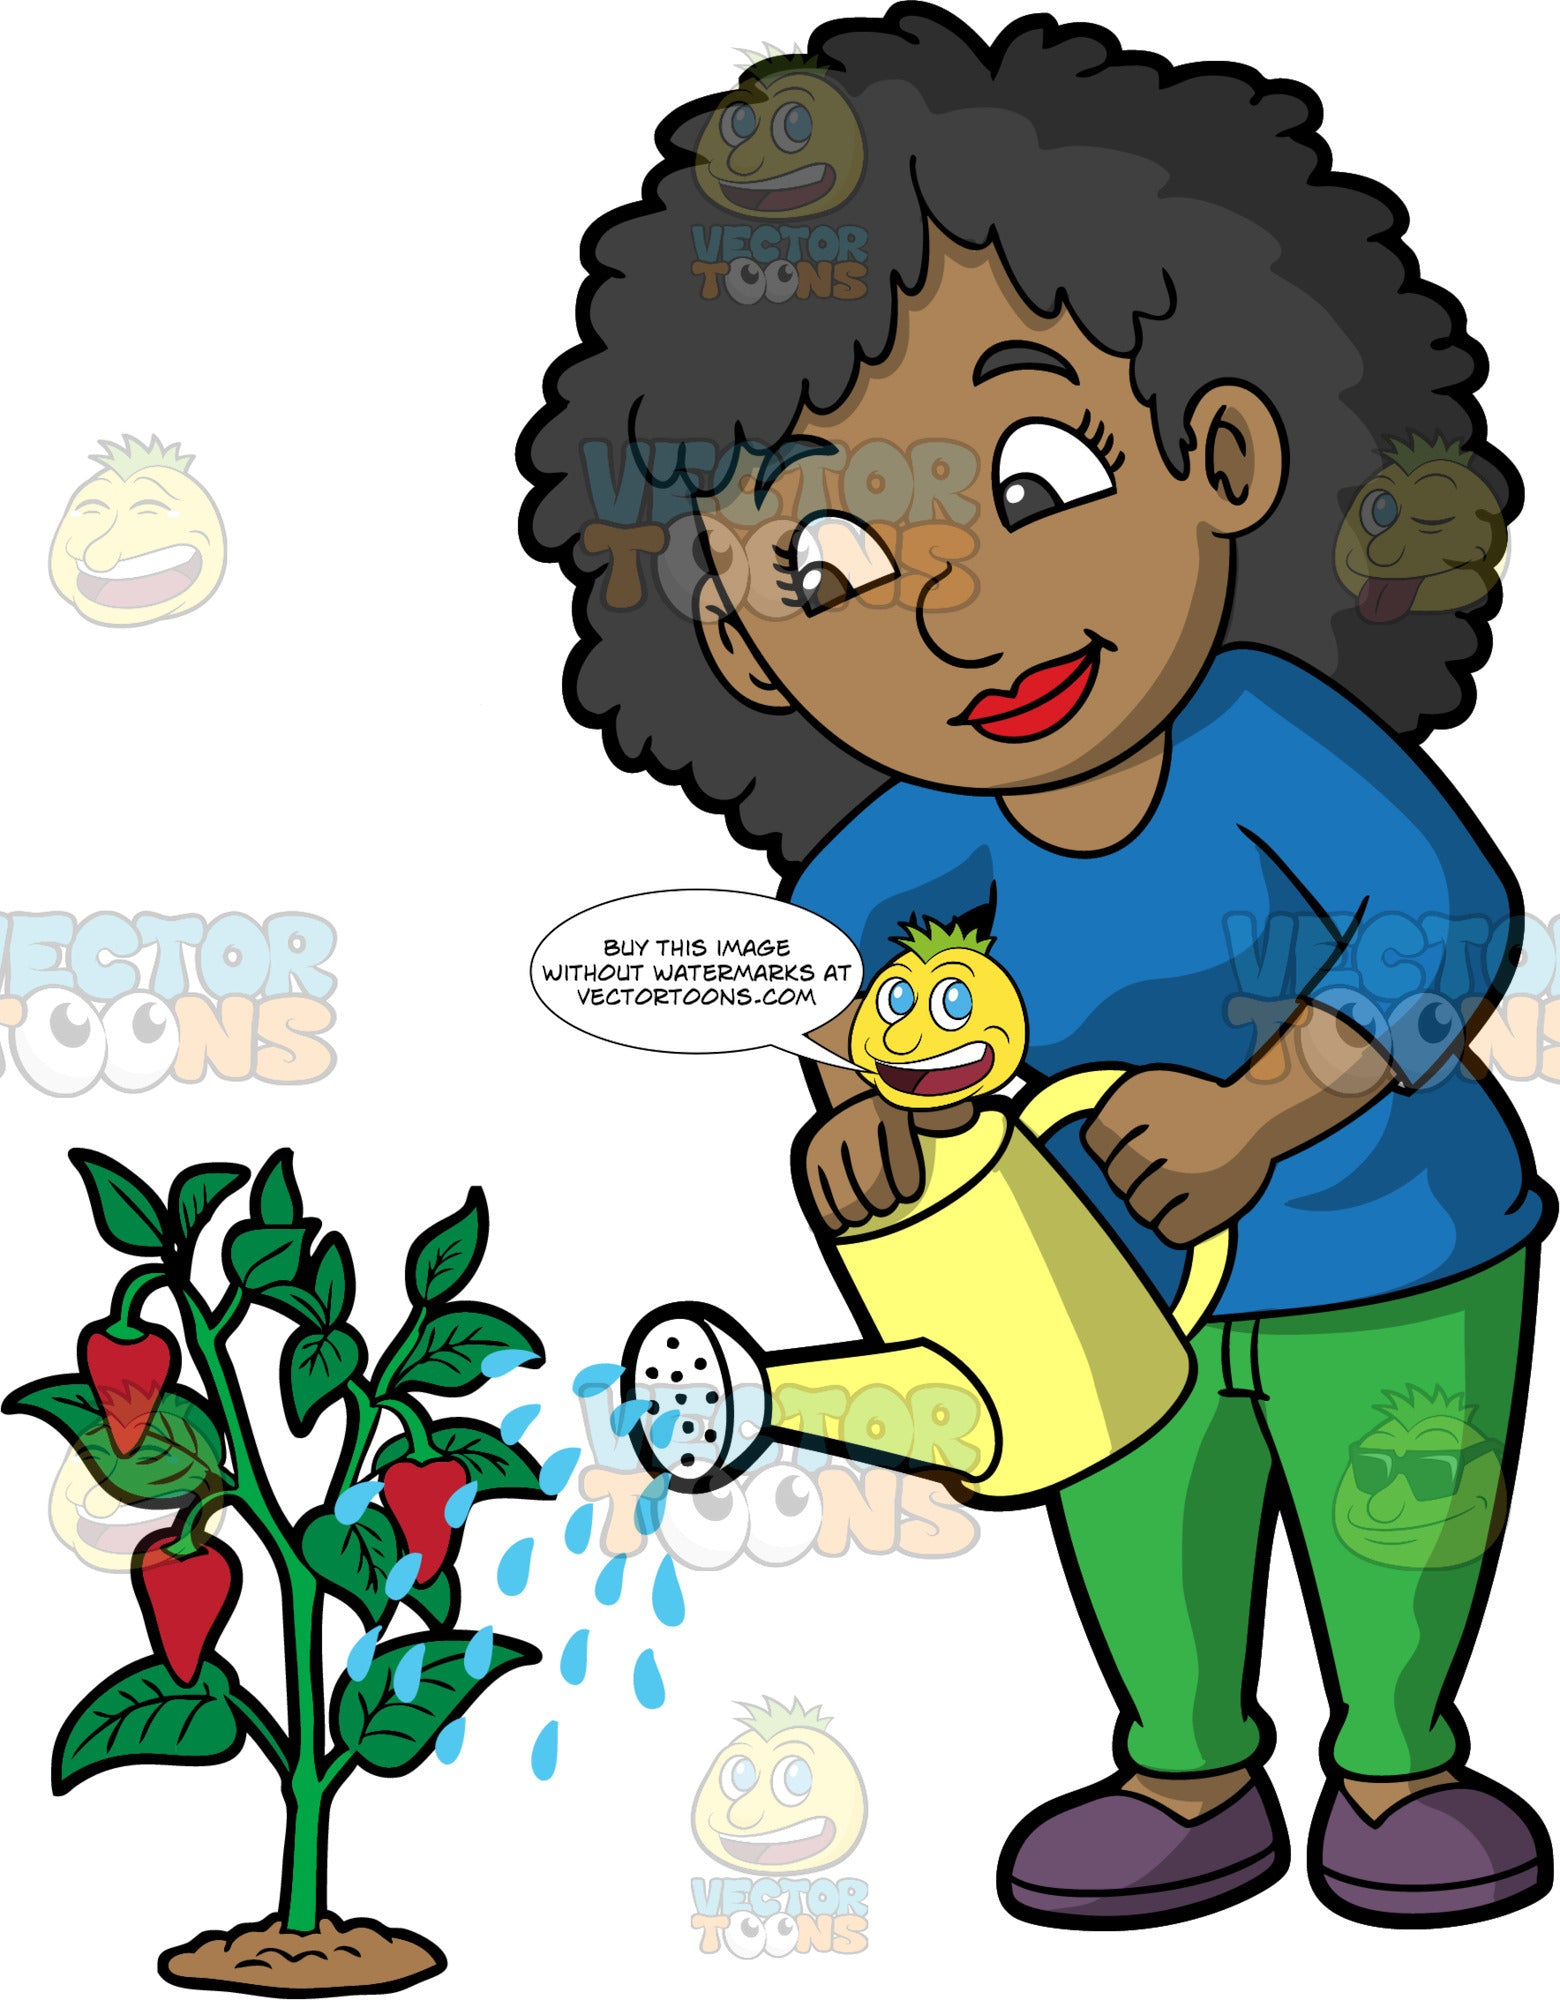 A black woman watering a strawberry plant. A black woman wearing green pants, a long sleeve blue shirts, and purple shoes, uses a yellow watering can to water a strawberry plant